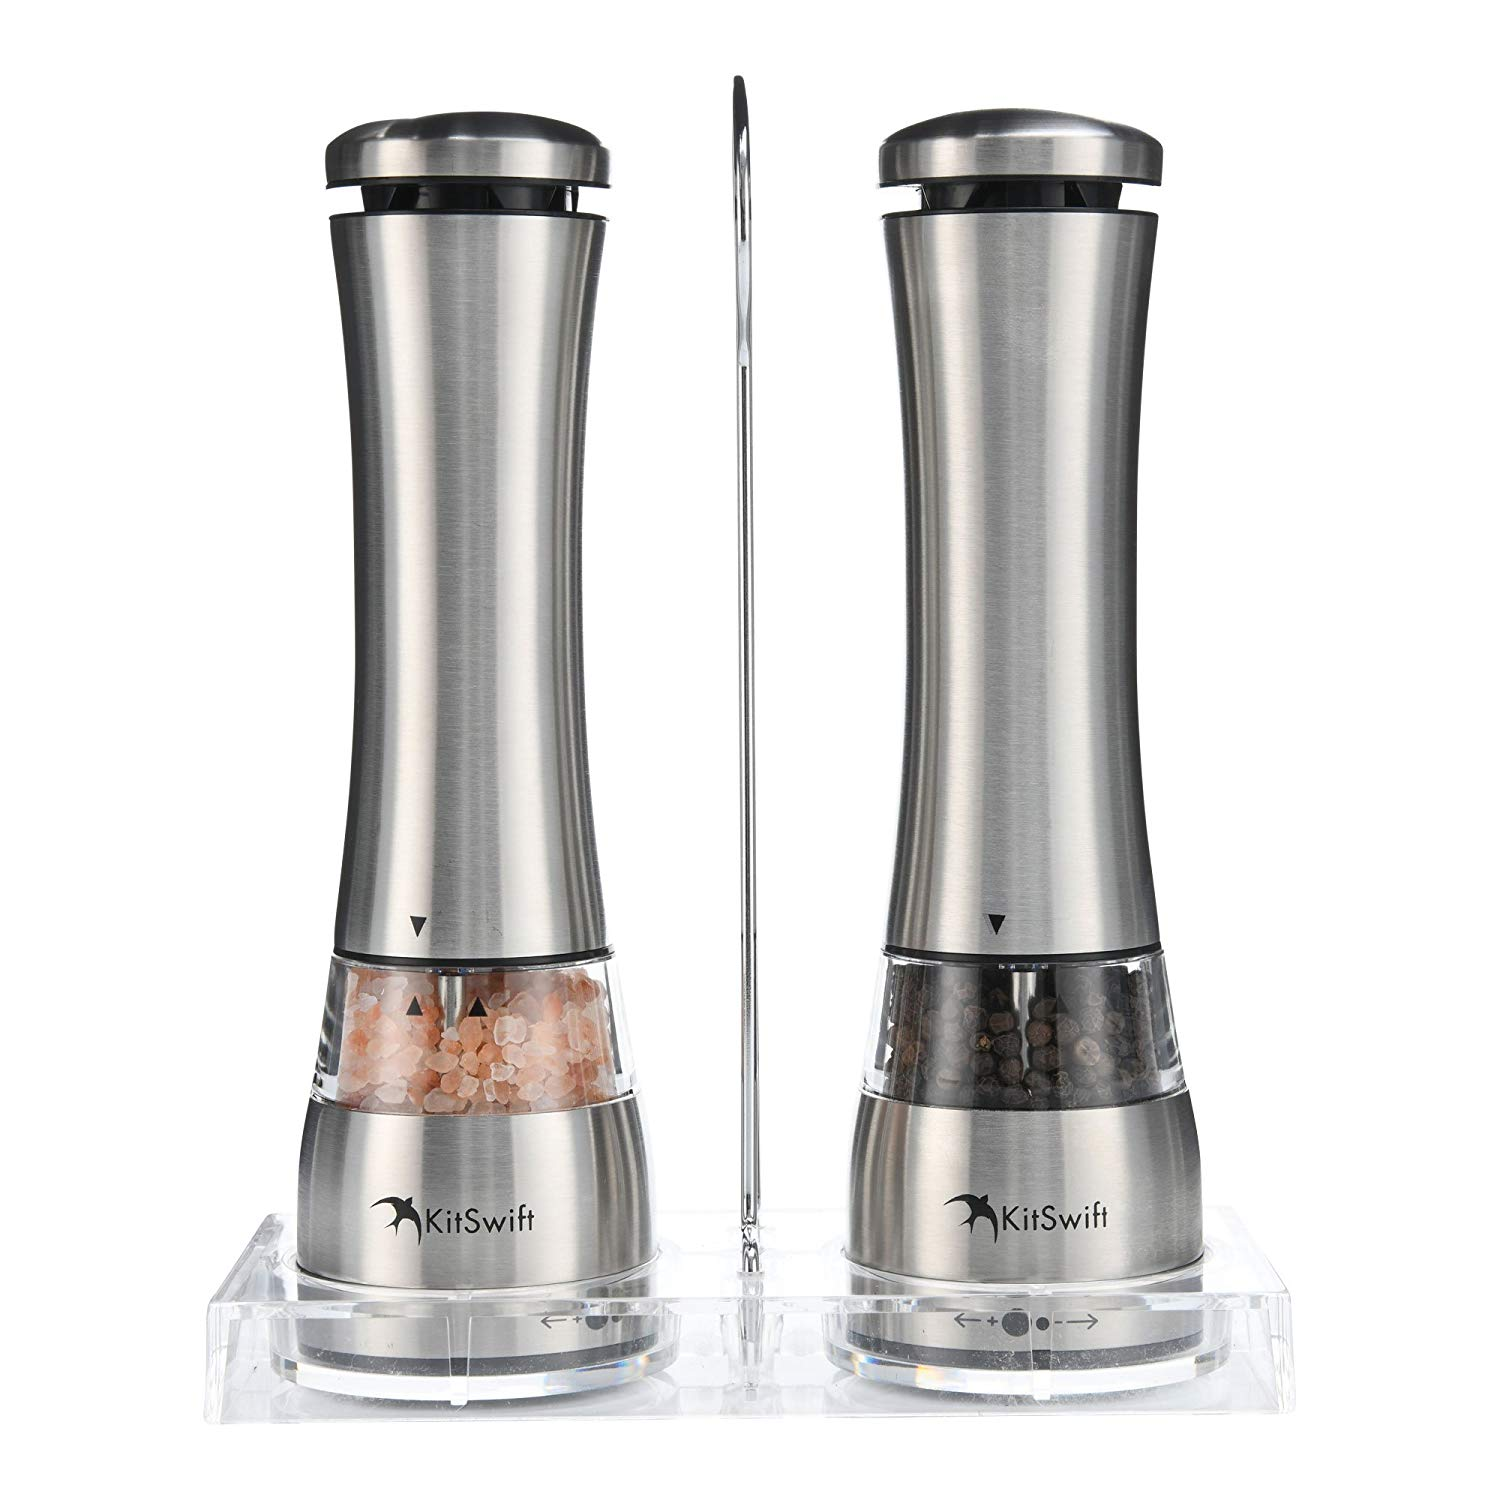 Electric Salt & Pepper Grinder Set by KitSwift - Battery Operated Automatic Stainless Steel Mill with Ceramic Core & LED Light - Adjustable Coarseness - For Himalayan & Sea Salt, Black Pepper & More